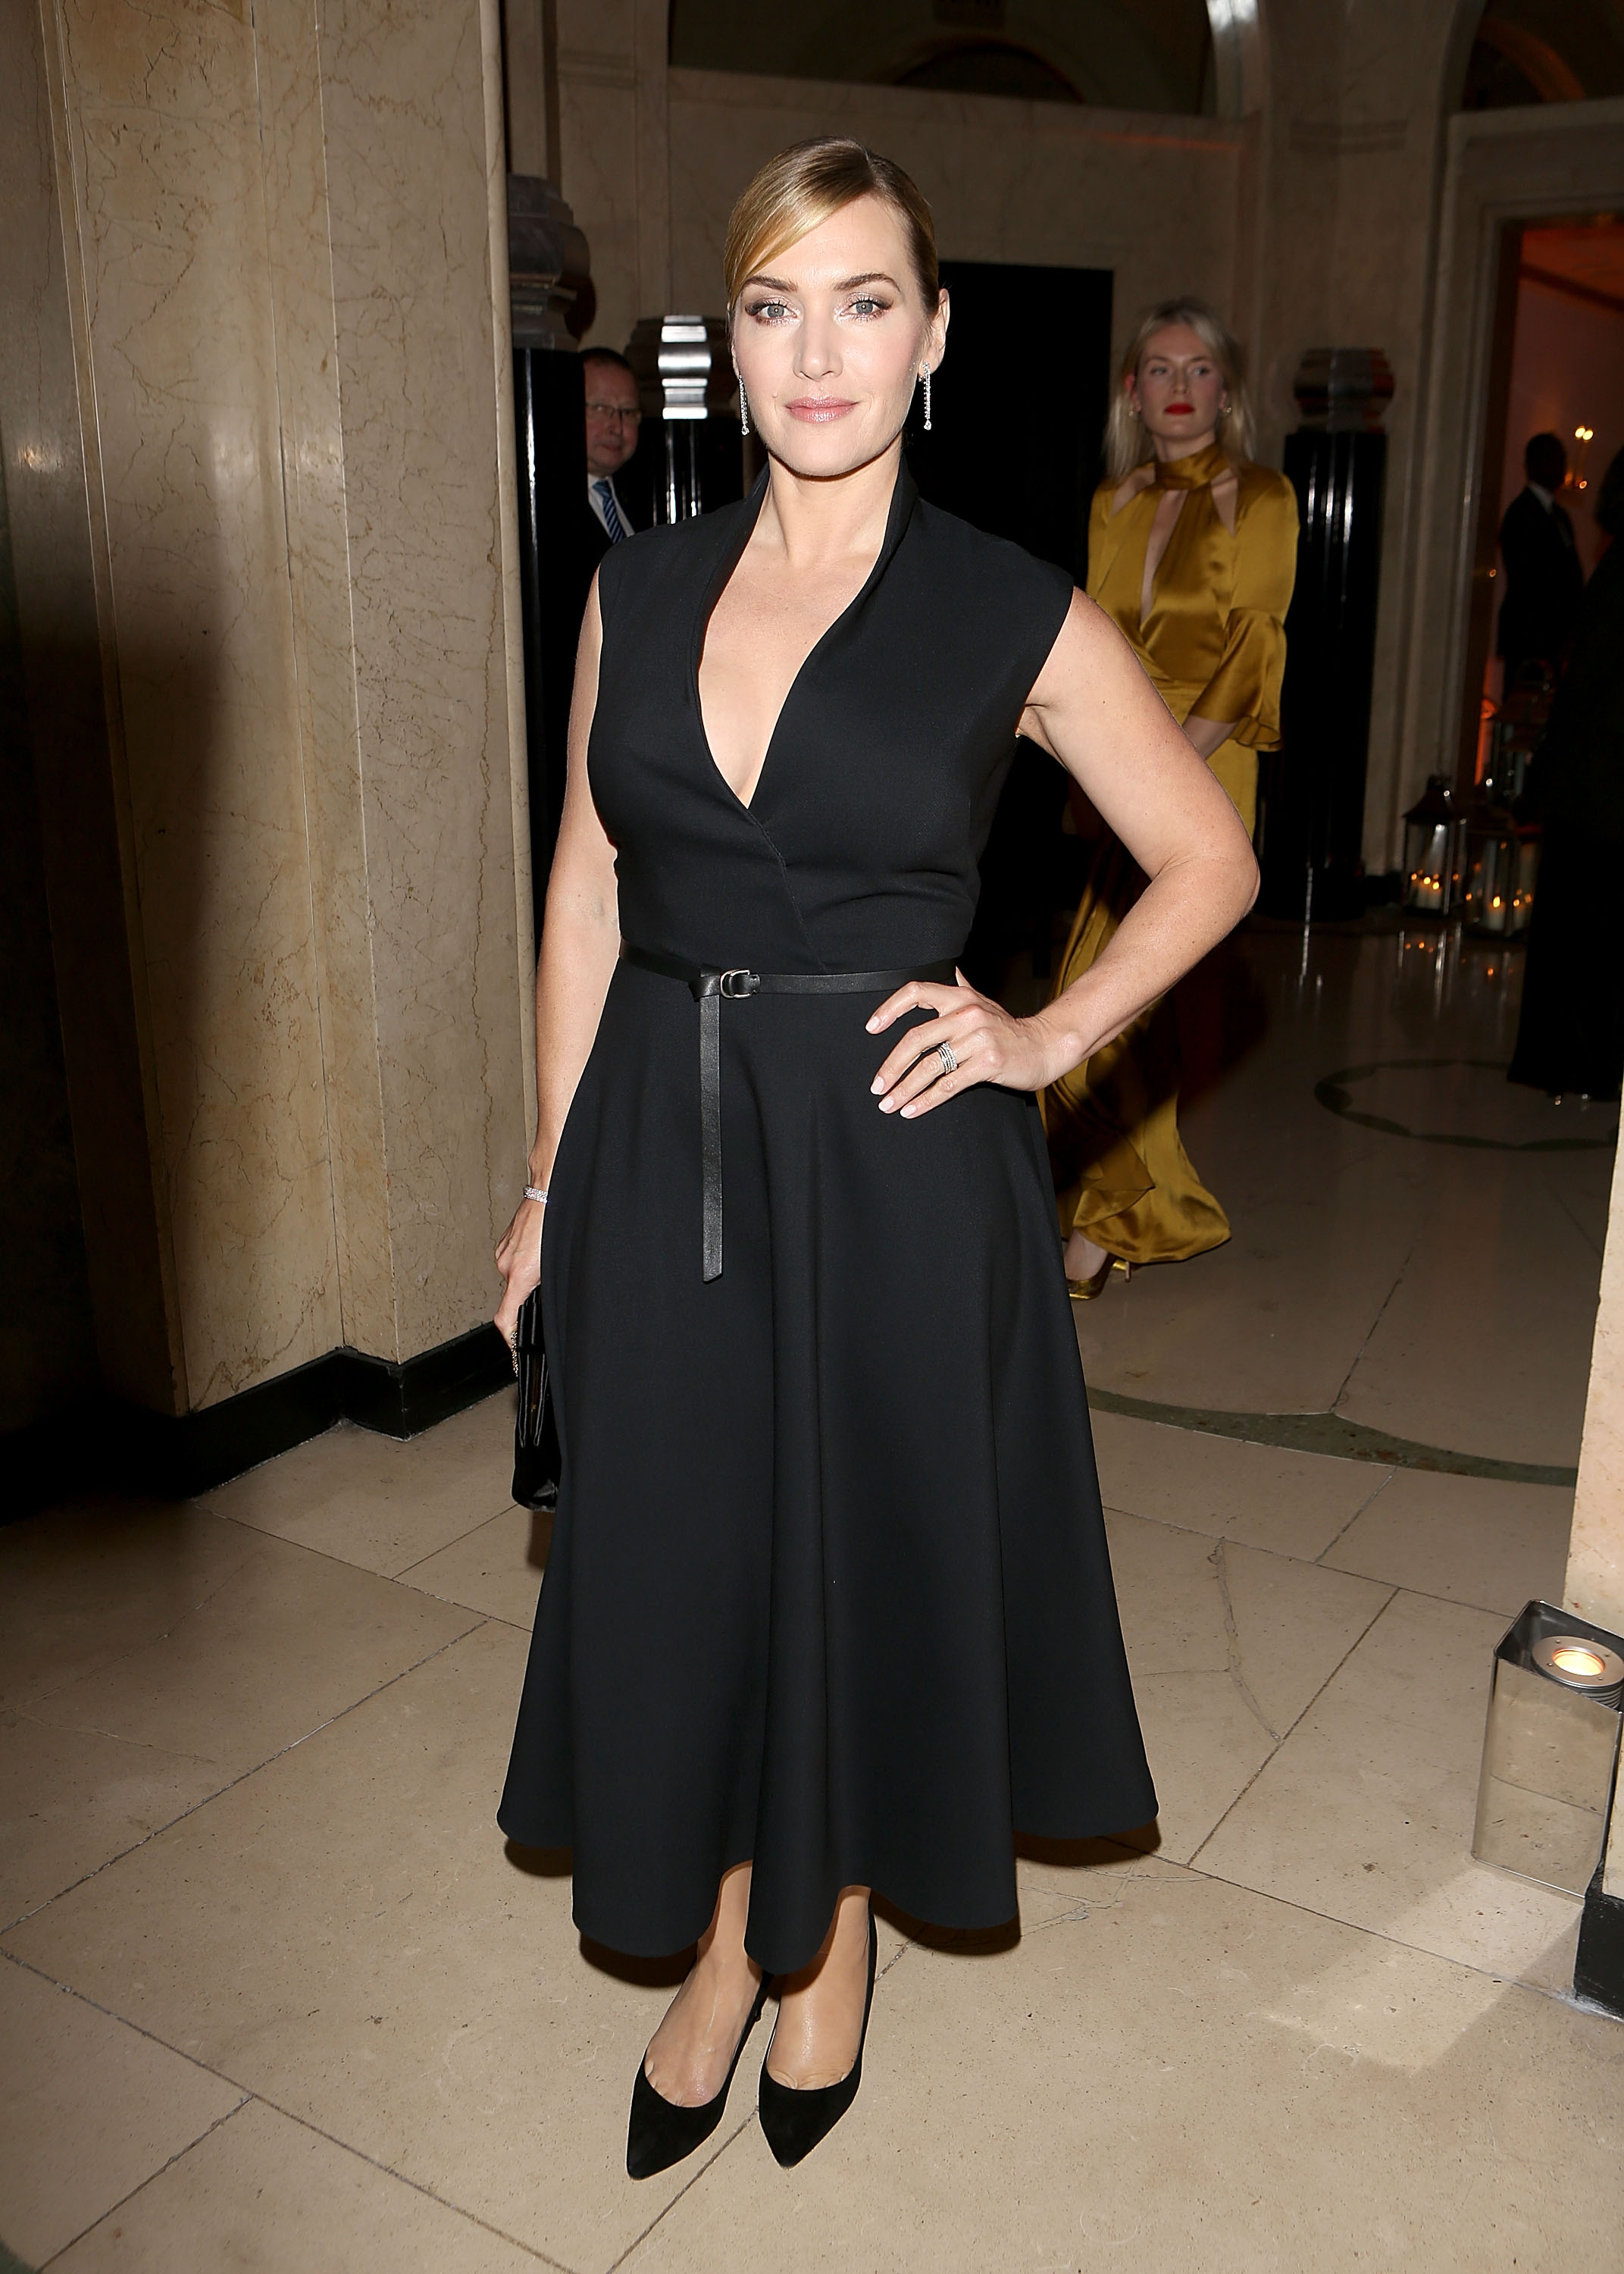 LONDON, ENGLAND - NOVEMBER 02:  Kate Winslet attends the Harper's Bazaar Women of the Year Awards at Claridge's Hotel on November 2, 2017 in London, England.  (Photo by David M. Benett/Dave Benett/Getty Images for Mercedes-Benz)